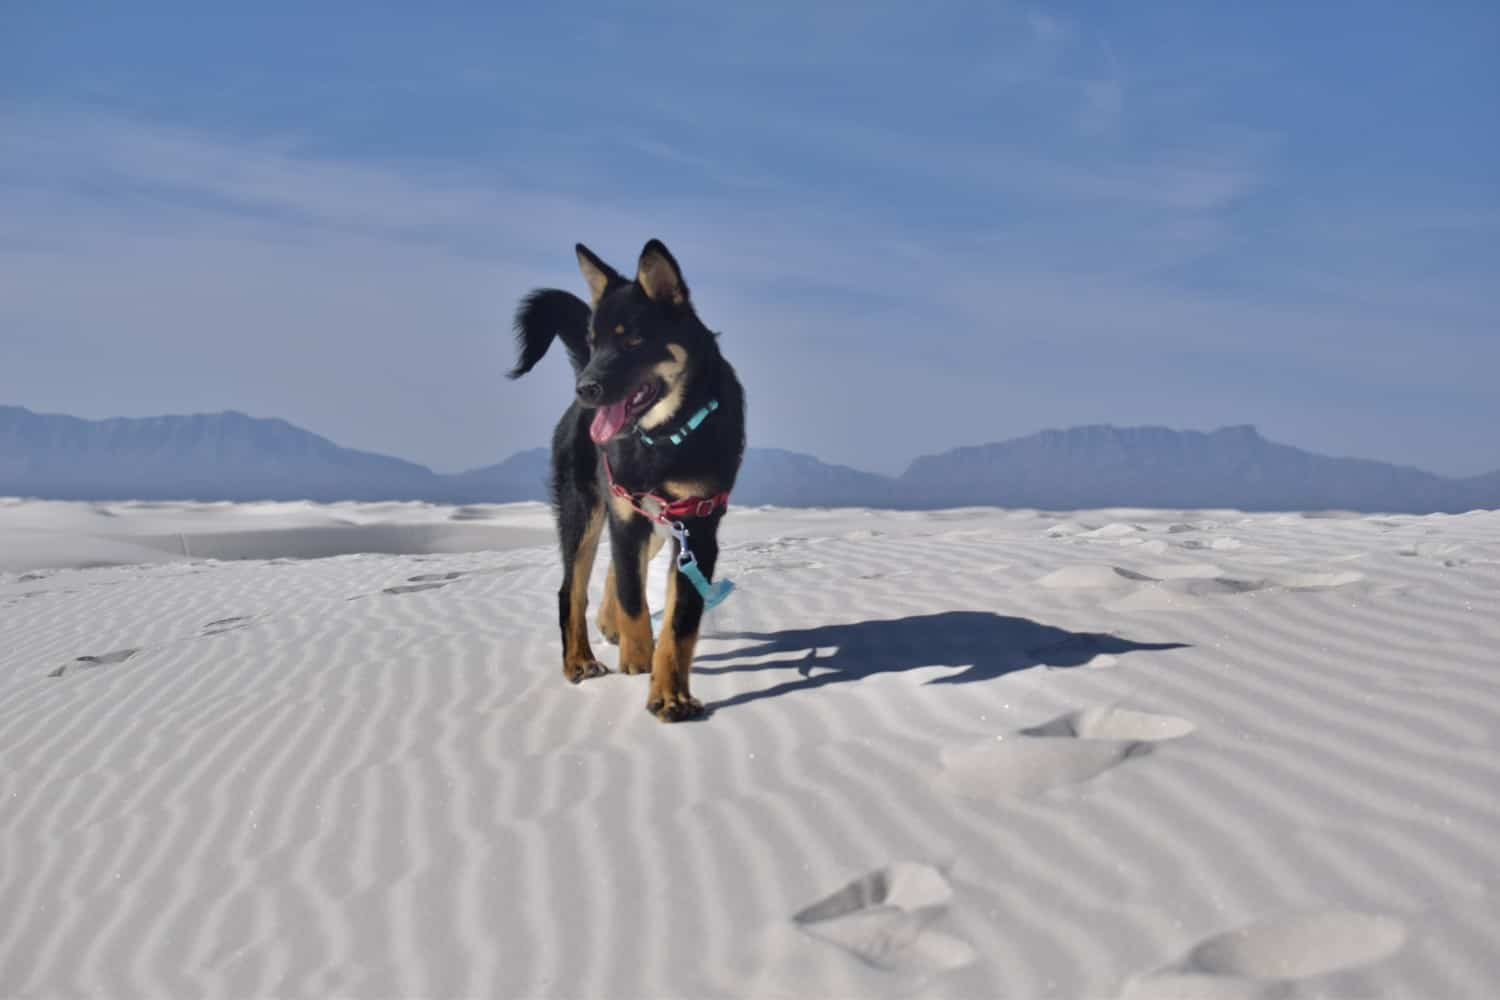 Black and tan dog standing on a white dune with mountains in the background